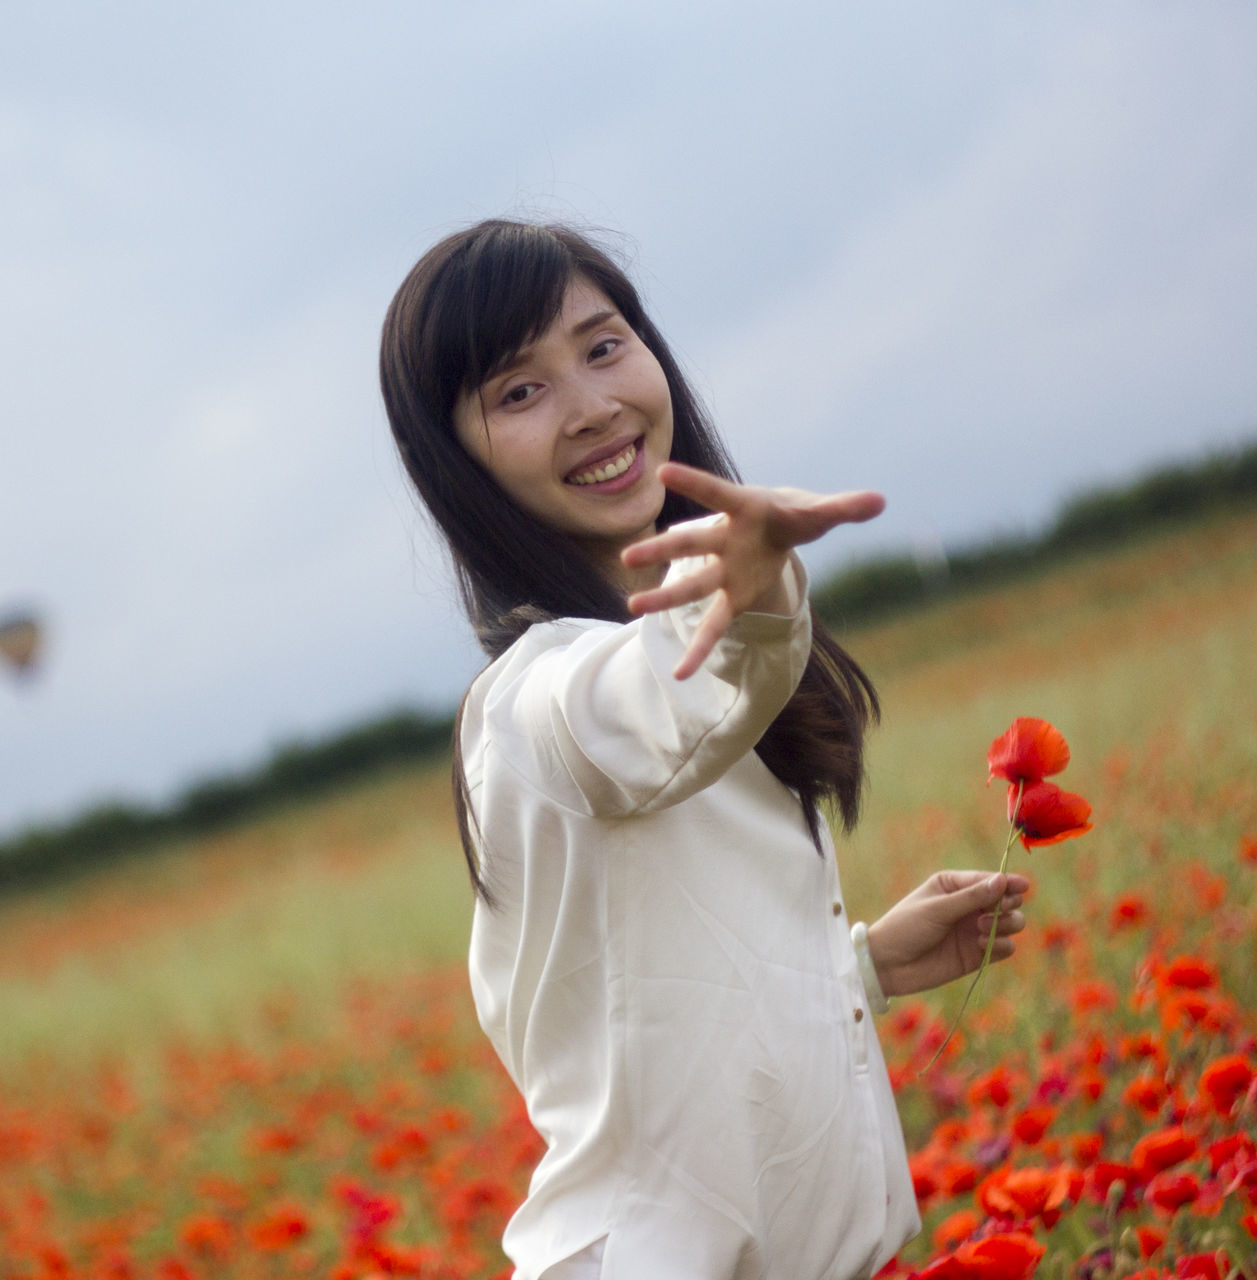 Portrait Of Young Smiling Woman Gesturing On Poppy Field Against Sky